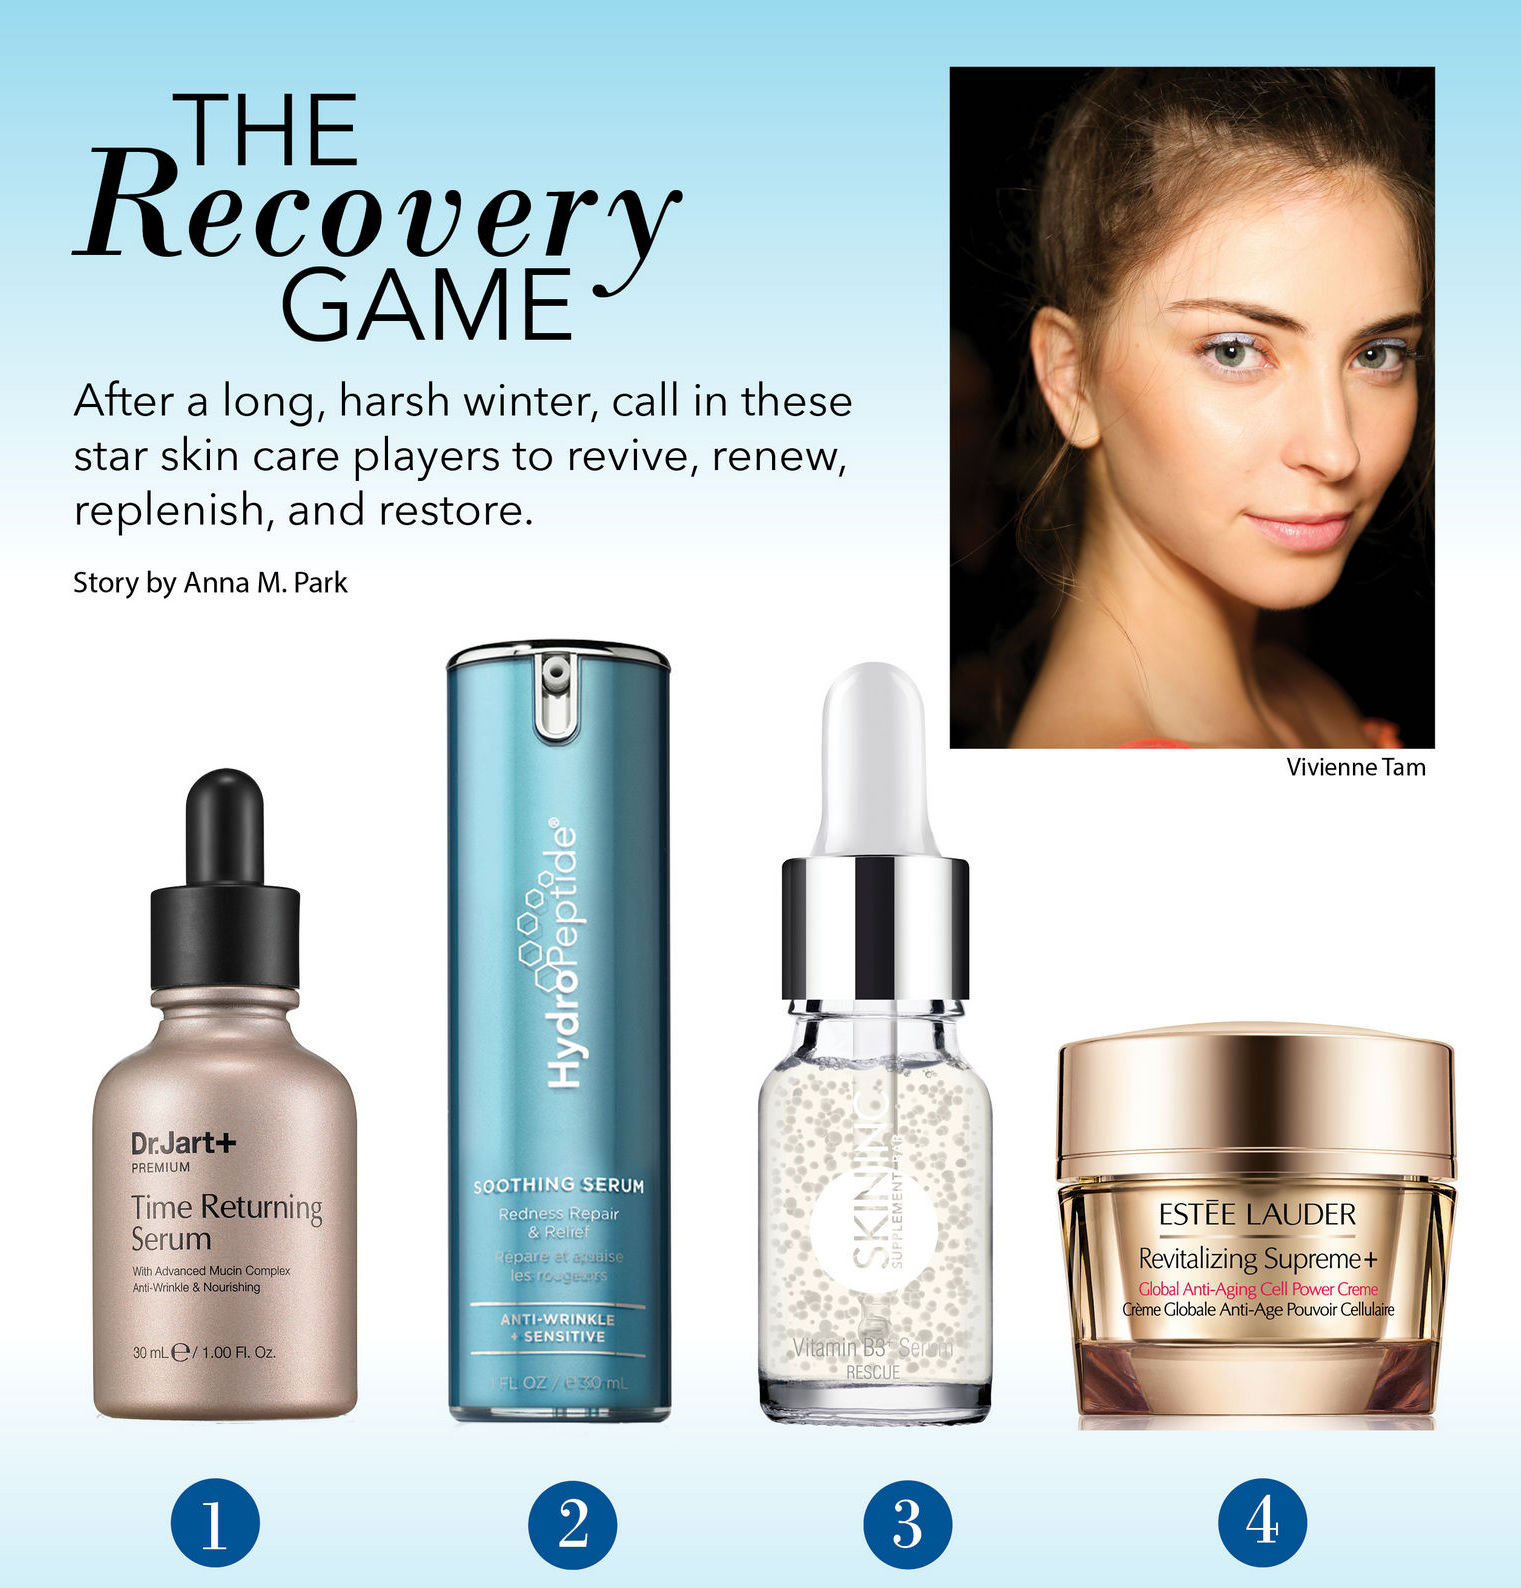 Spring Skin Care: Ready For A Spring Skin Care Detox? Recover, Revive, And